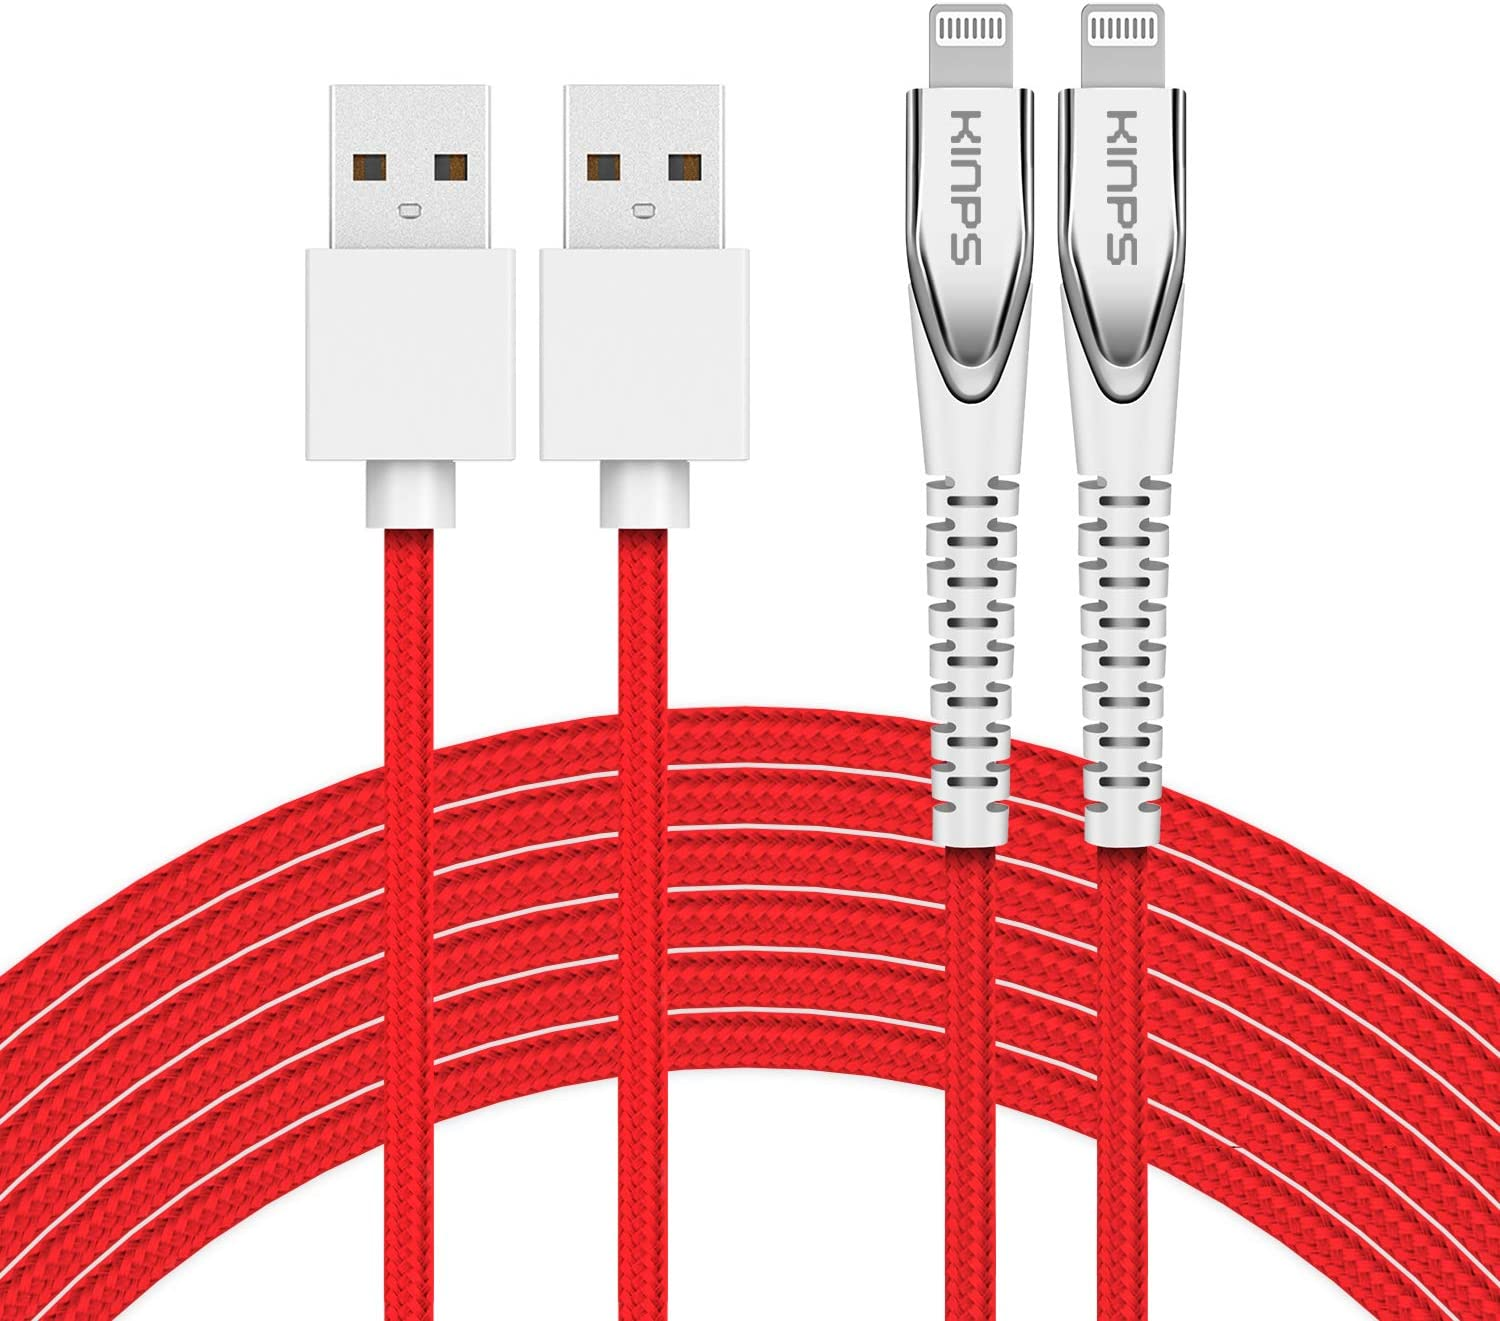 KINPS Apple MFI Certified Lightning Cable 10FT (2-Pack), Upgrade iPhone Charger Cord Compatible with iPhone Xs Max/XS/XR/X/8 Plus/8/7 Plus/7/6S Plu/6Ss, iPad, (Red)